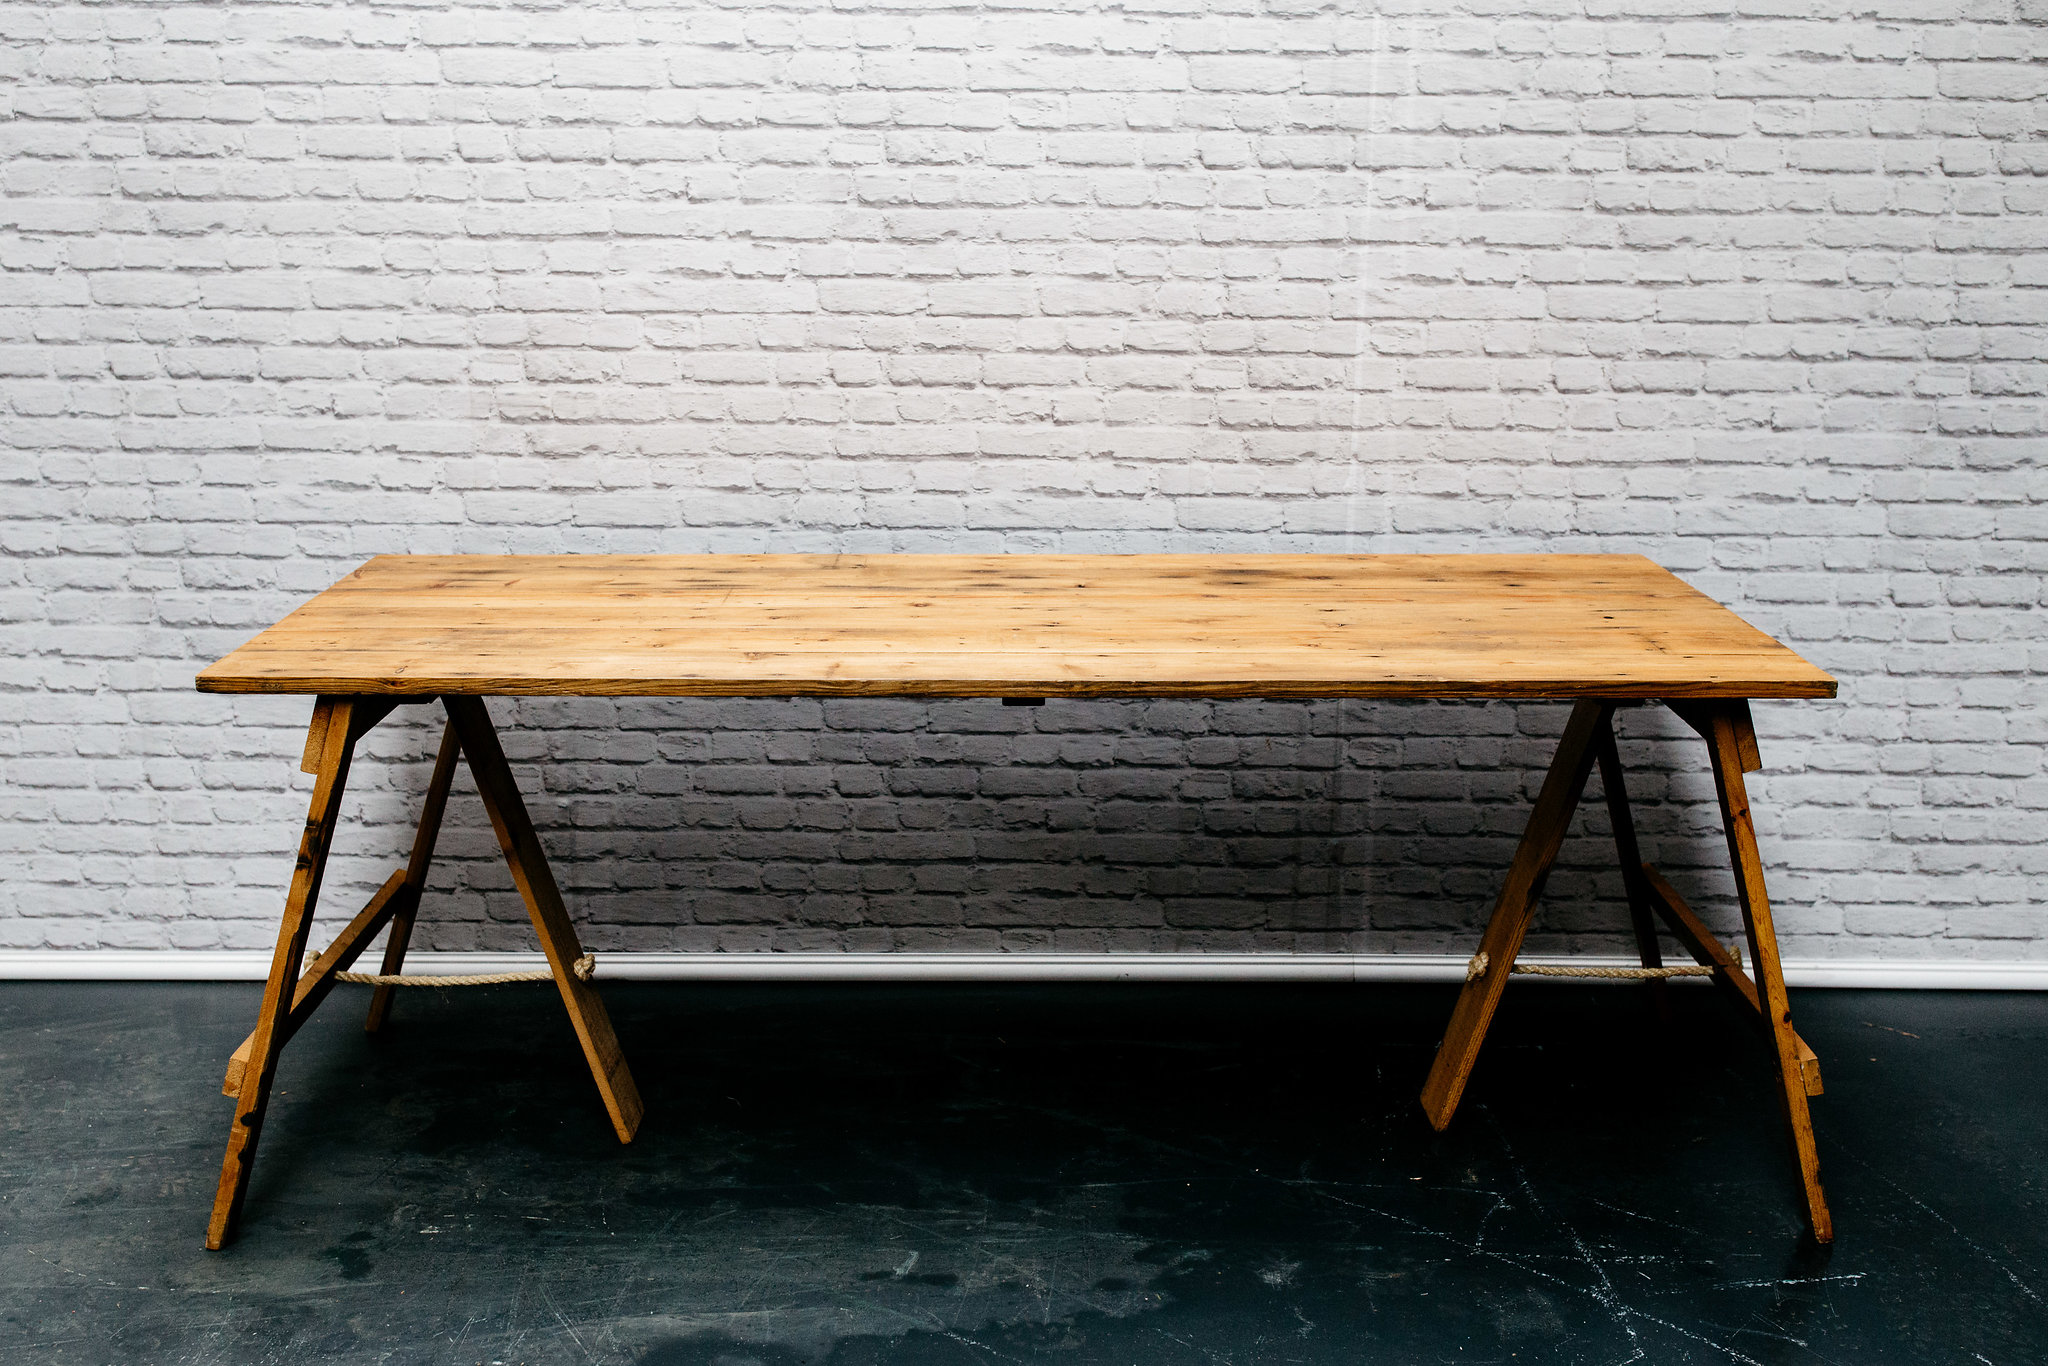 6ft Reclaimed Wood Trestle Table